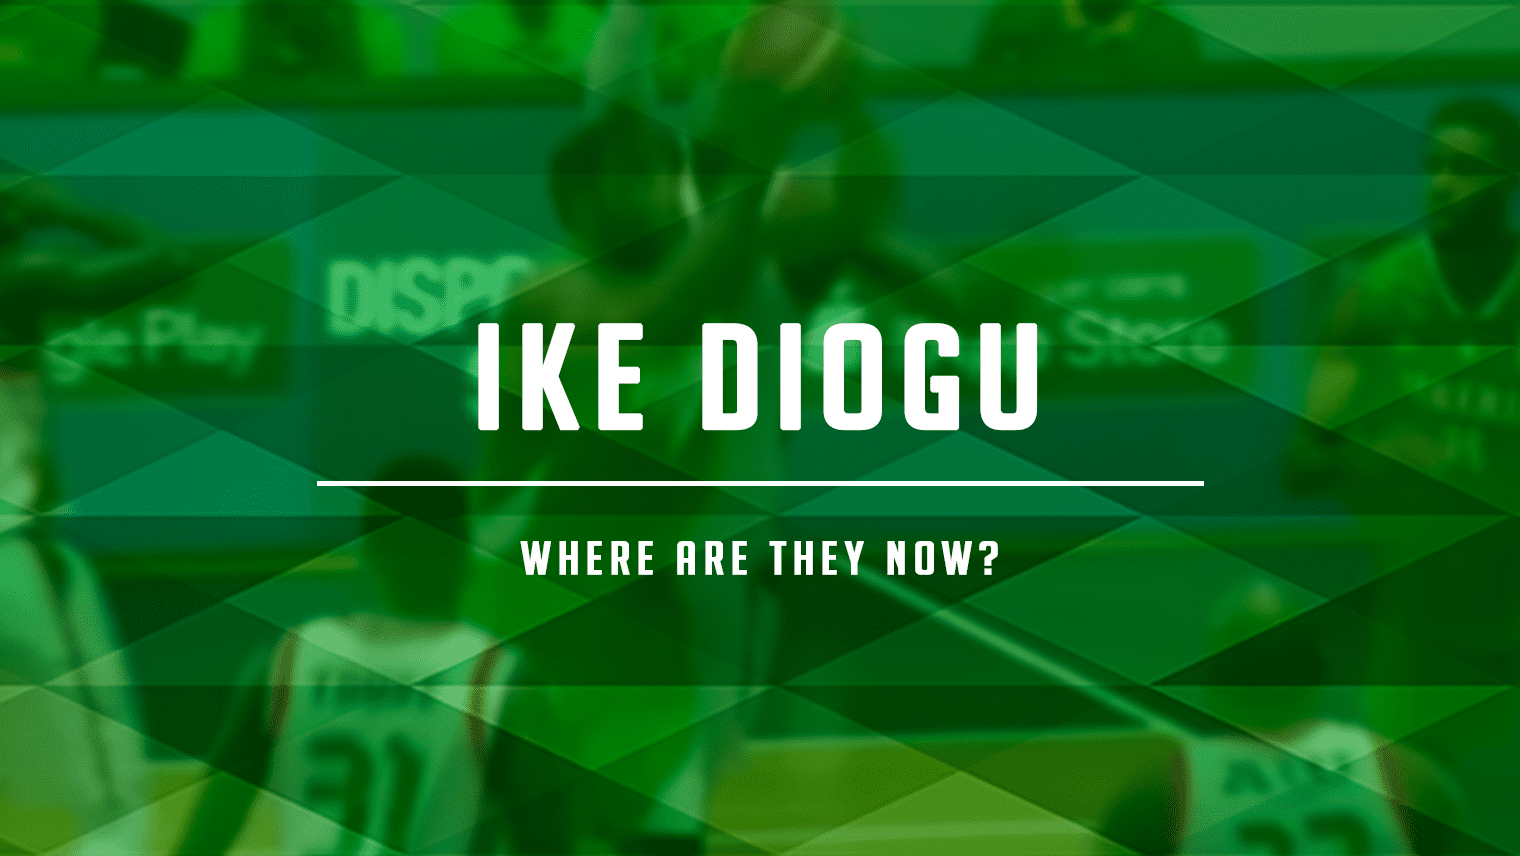 Since his Arizona State and NBA days, Ike Diogu has spent years mostly bouncing around China and Puerto Rico, plus leading the Nigeria National Team.